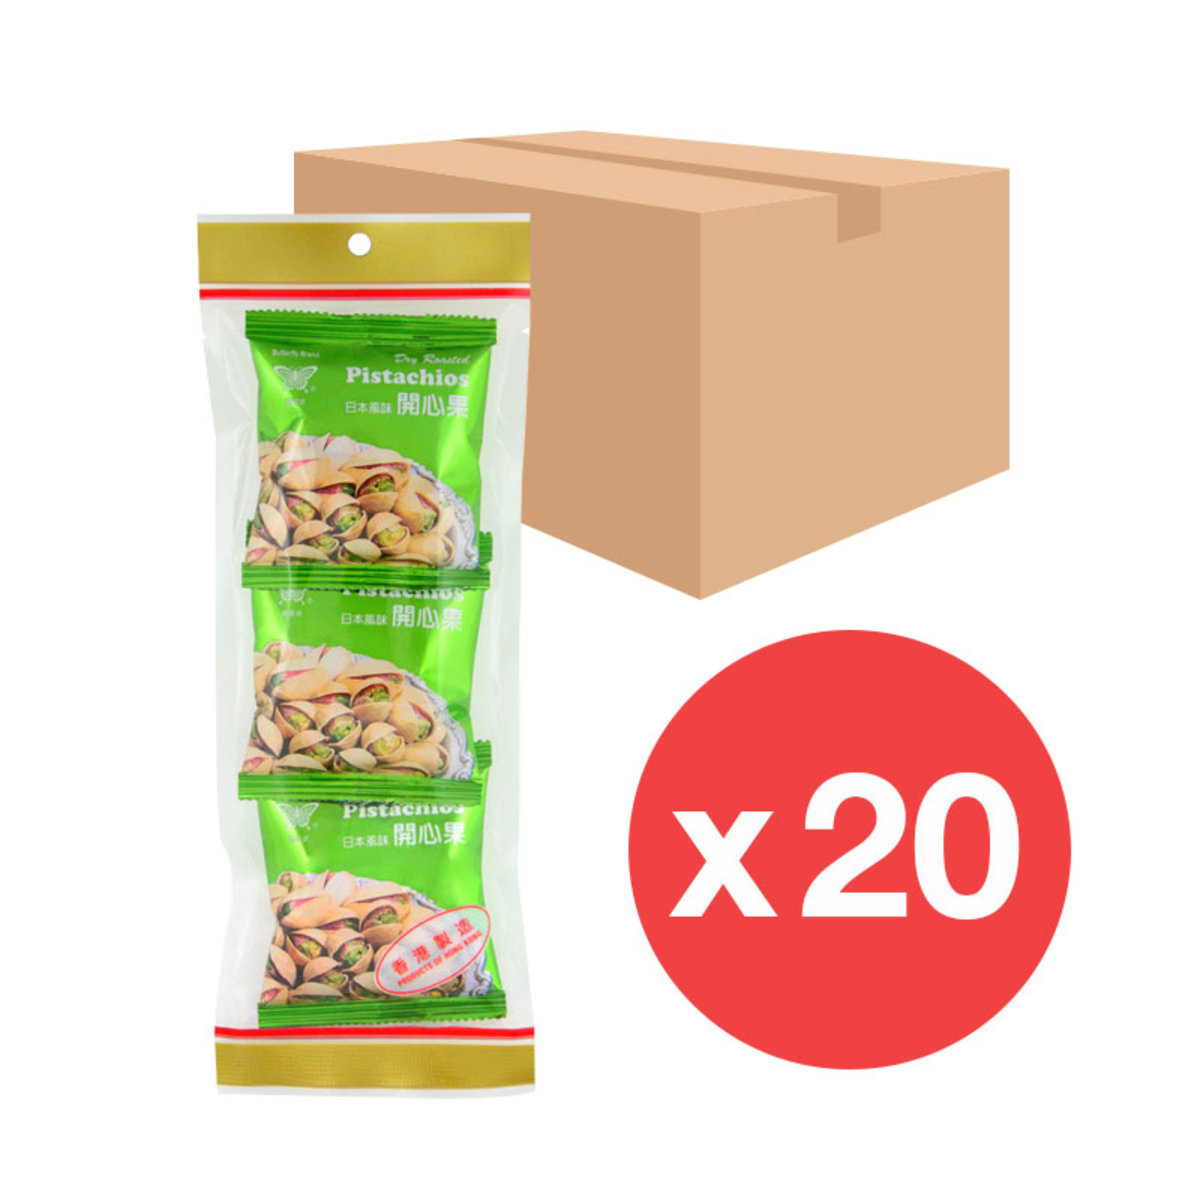 [Full case 20 bags] Dry Roasted Pistachios